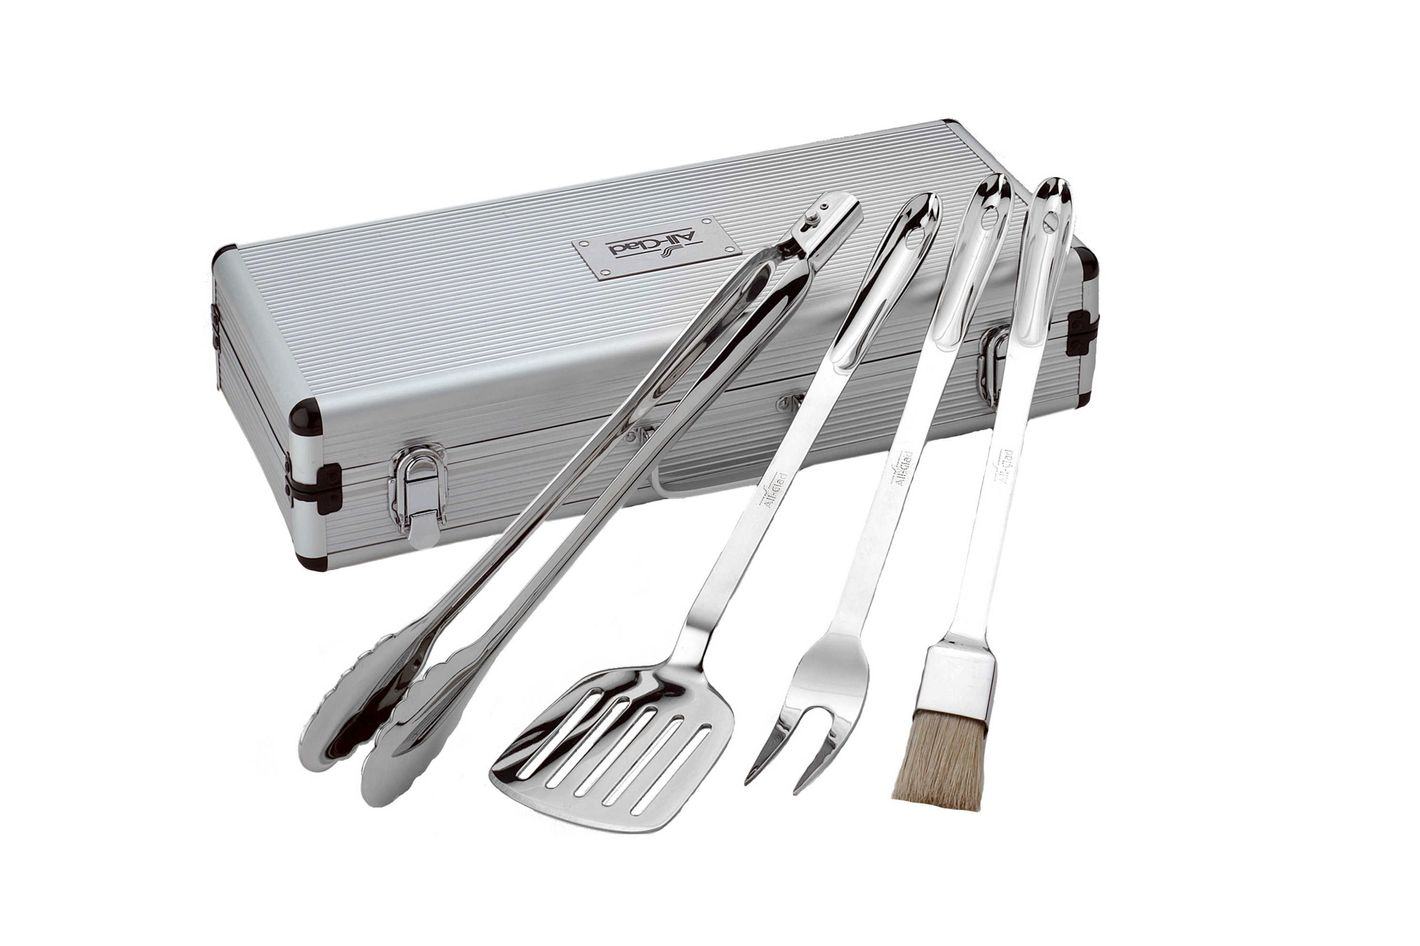 All-Clad 4-Piece Stainless Steel Barbecue Tool Set with Storage Case